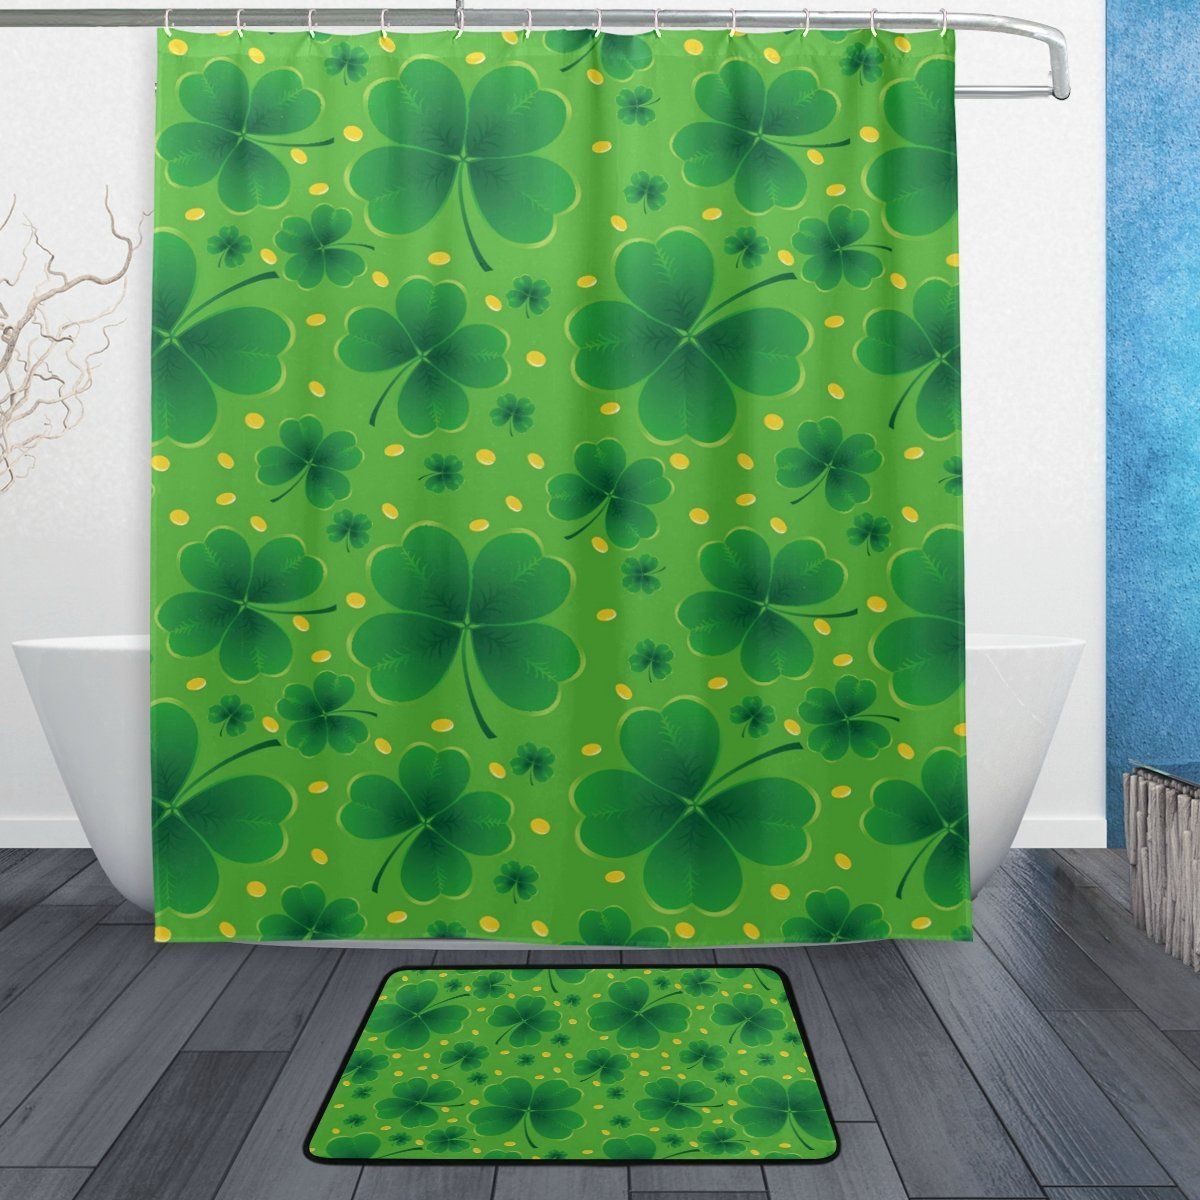 Saint Patricks Day Shower Curtain and Mat Set, Lucky Clover Spring Green Leaf Waterproof Fabric Bathroom Curtain